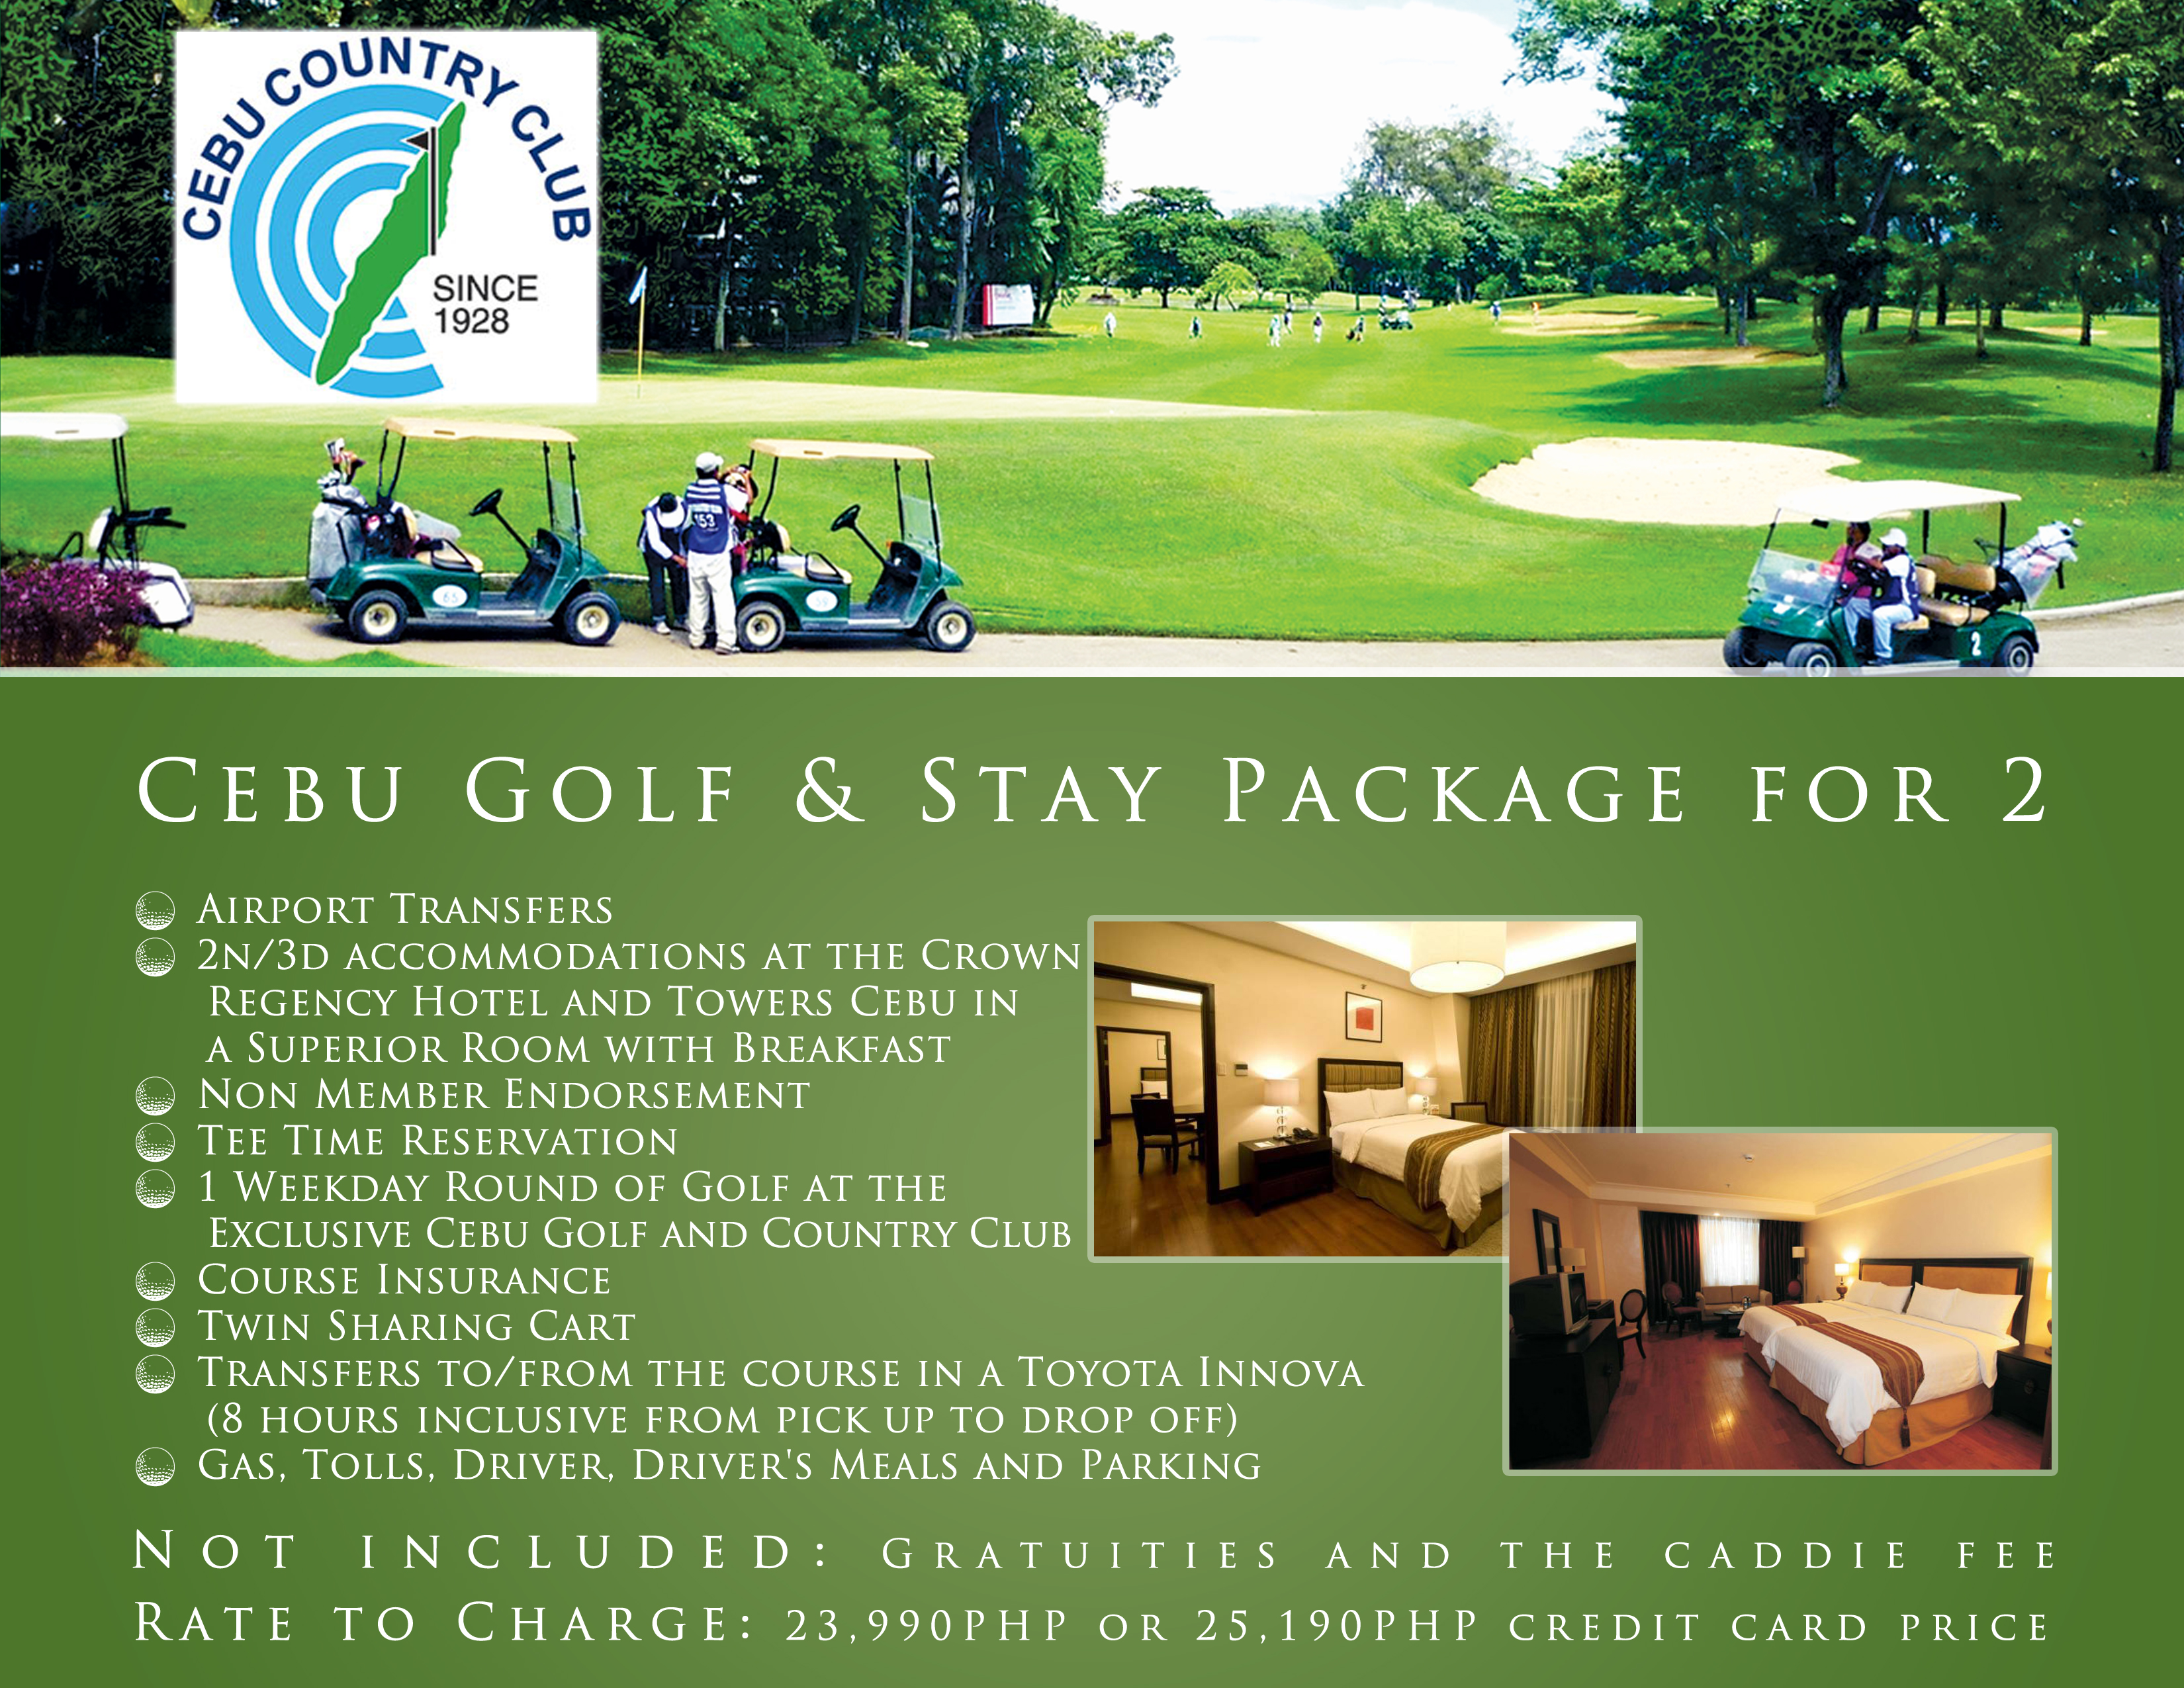 Offer #7 - Cebu Golf & Stay Package for 2 copy